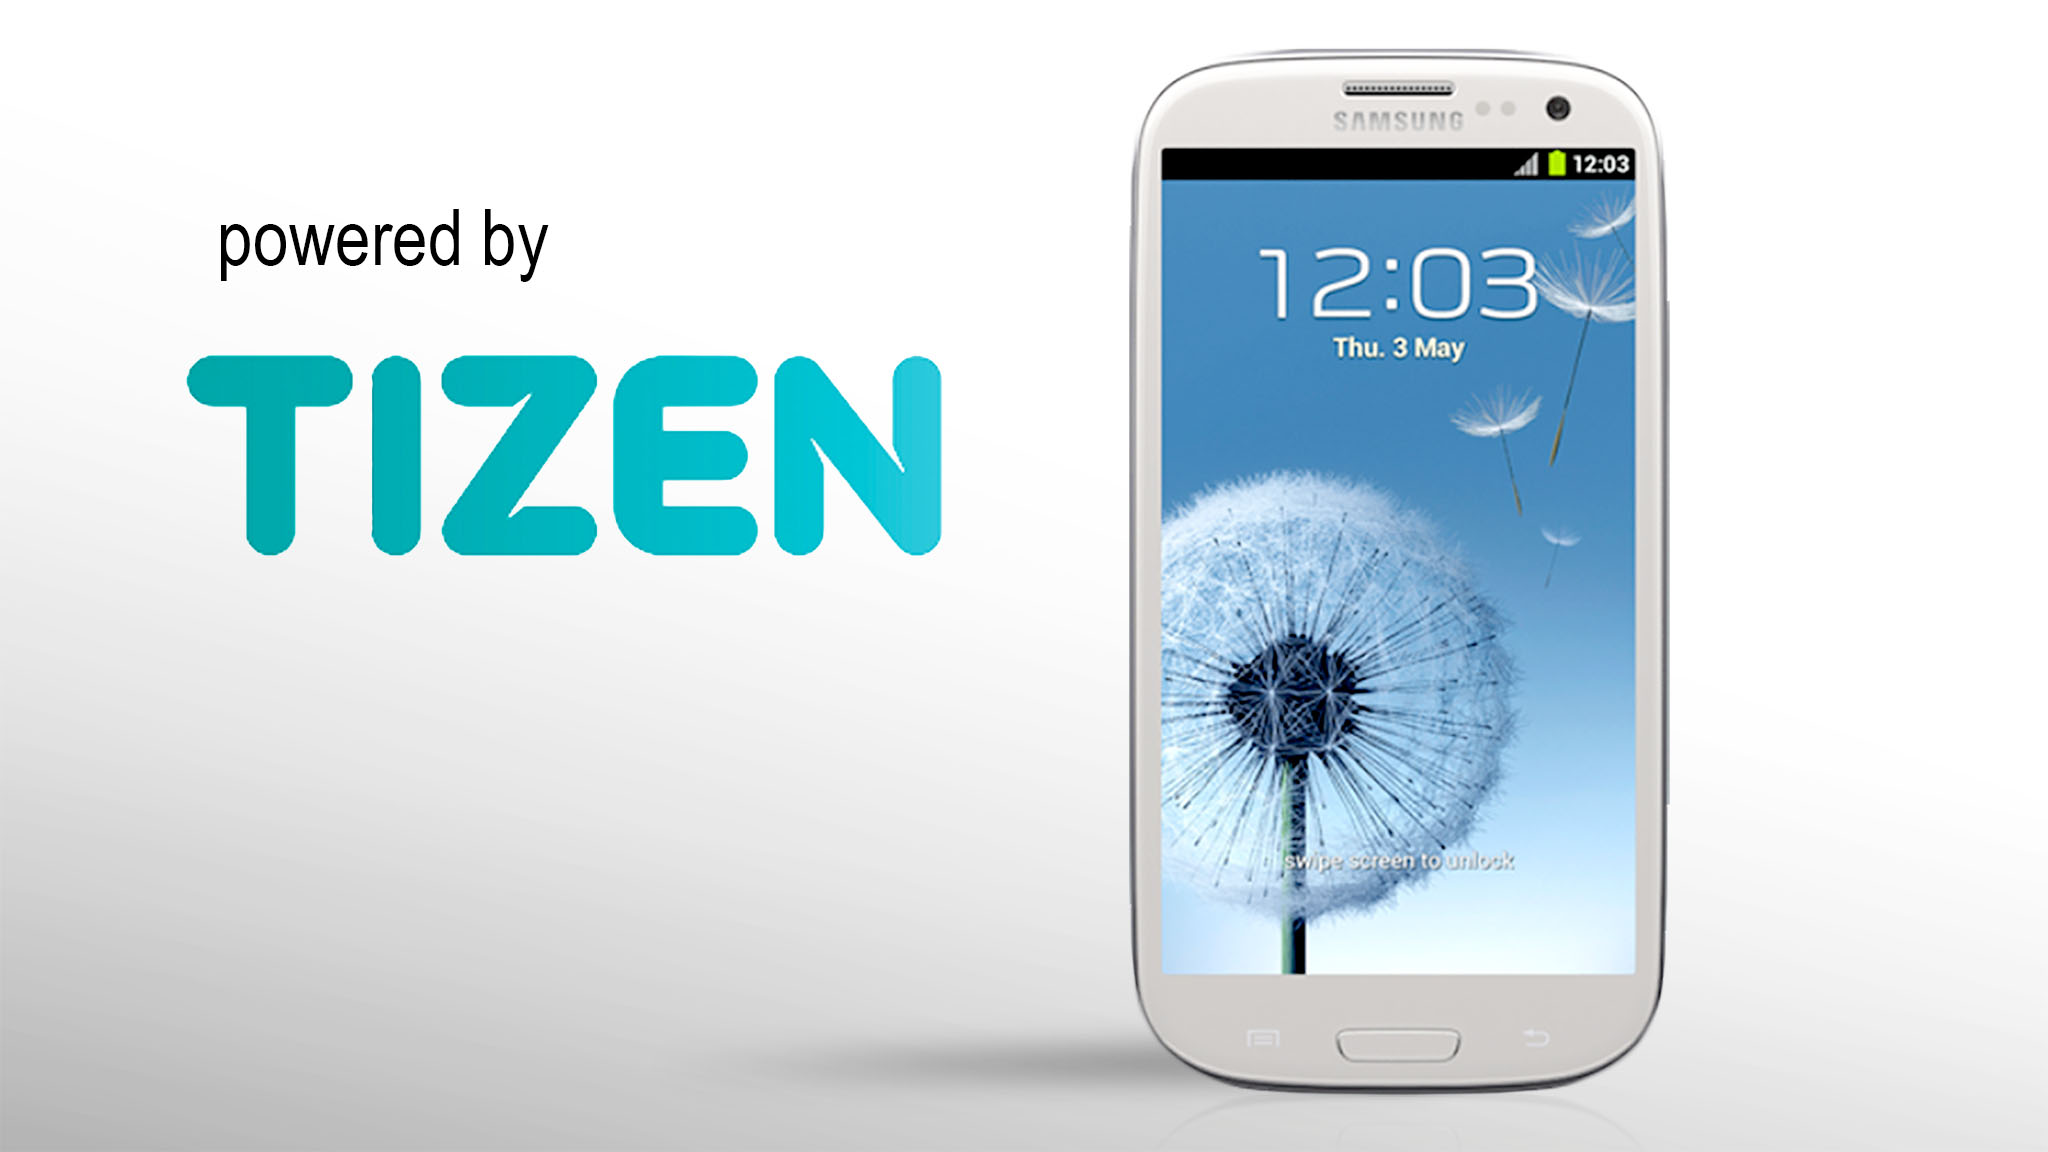 Samsung to release smartphone based on Tizen OS